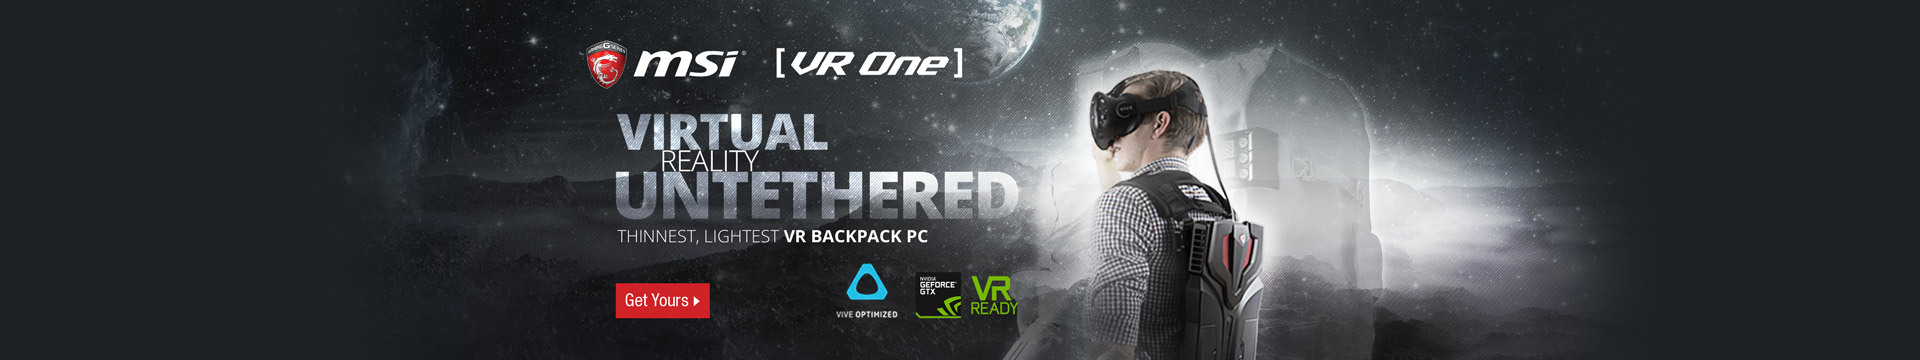 Virtual reality untethered